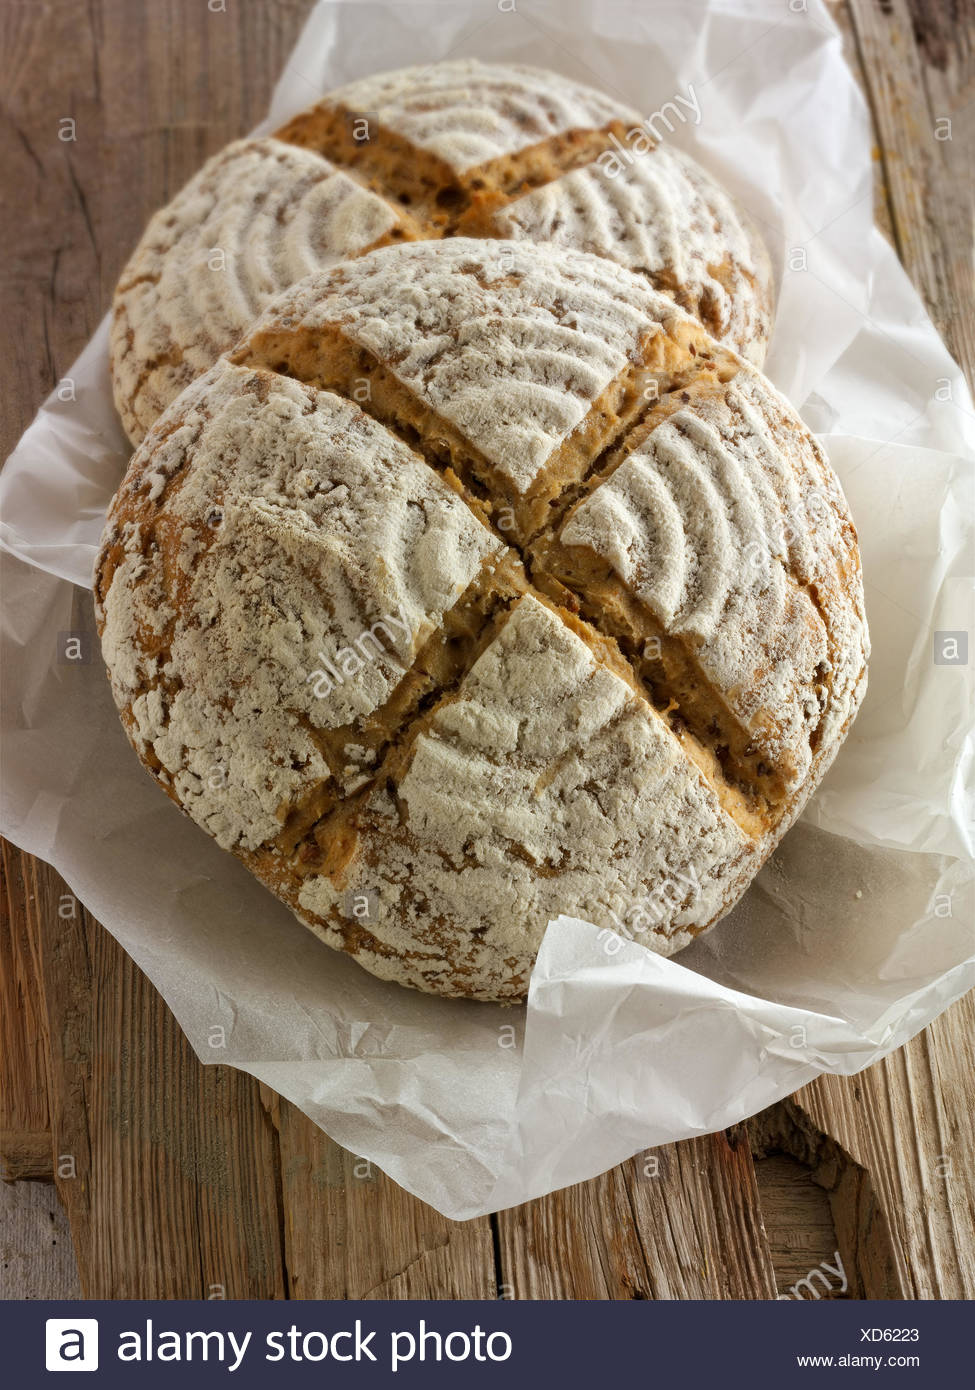 Artisan sour dough wholemeal seed bread with white, malted rye flour - Stock Image